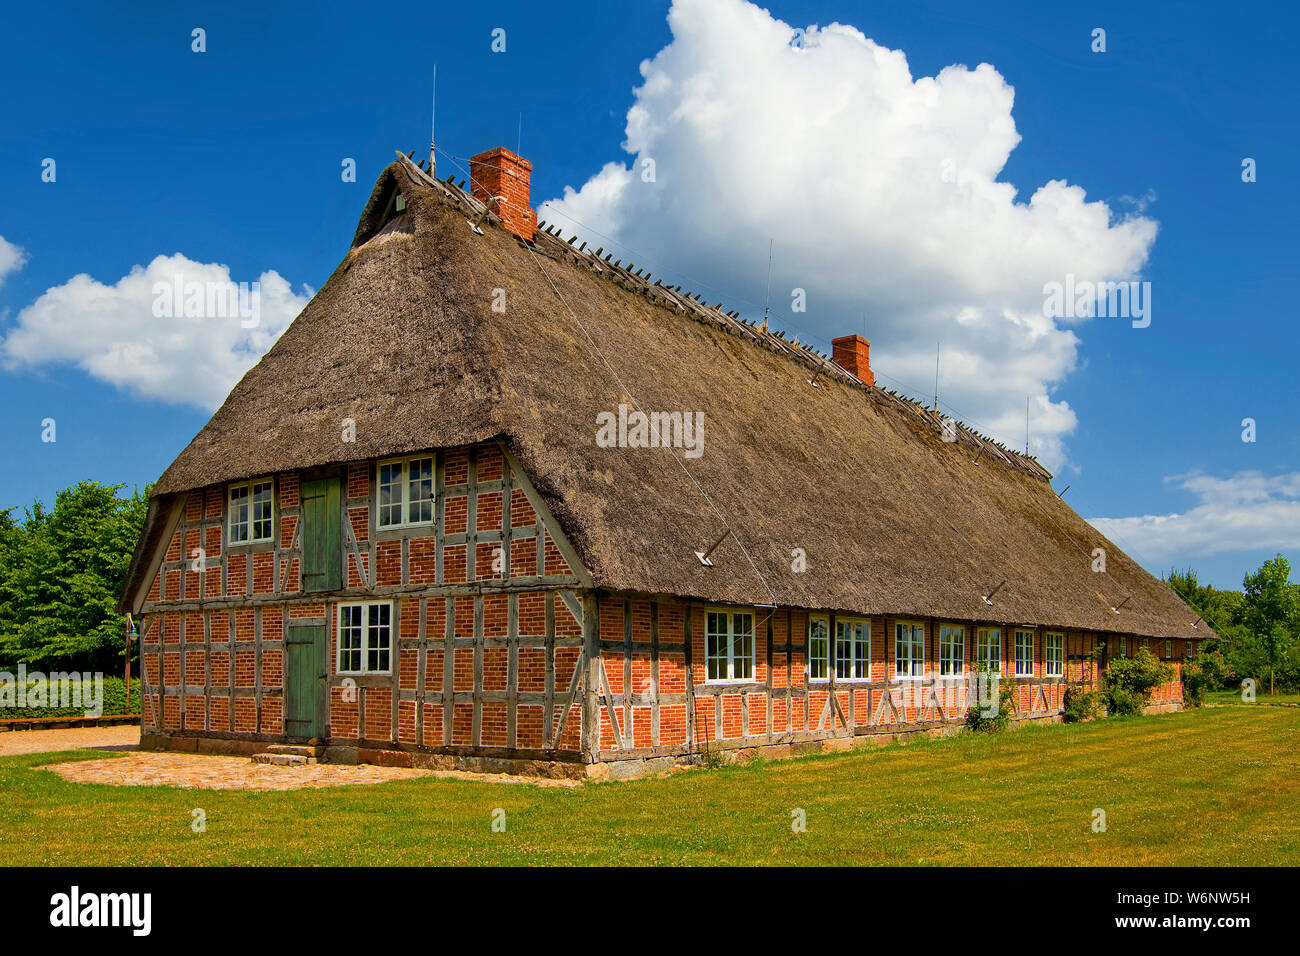 Landscape museum, traditional house with thatched roof, Angeln, Schleswig-Holstein, Germany Stock Photo